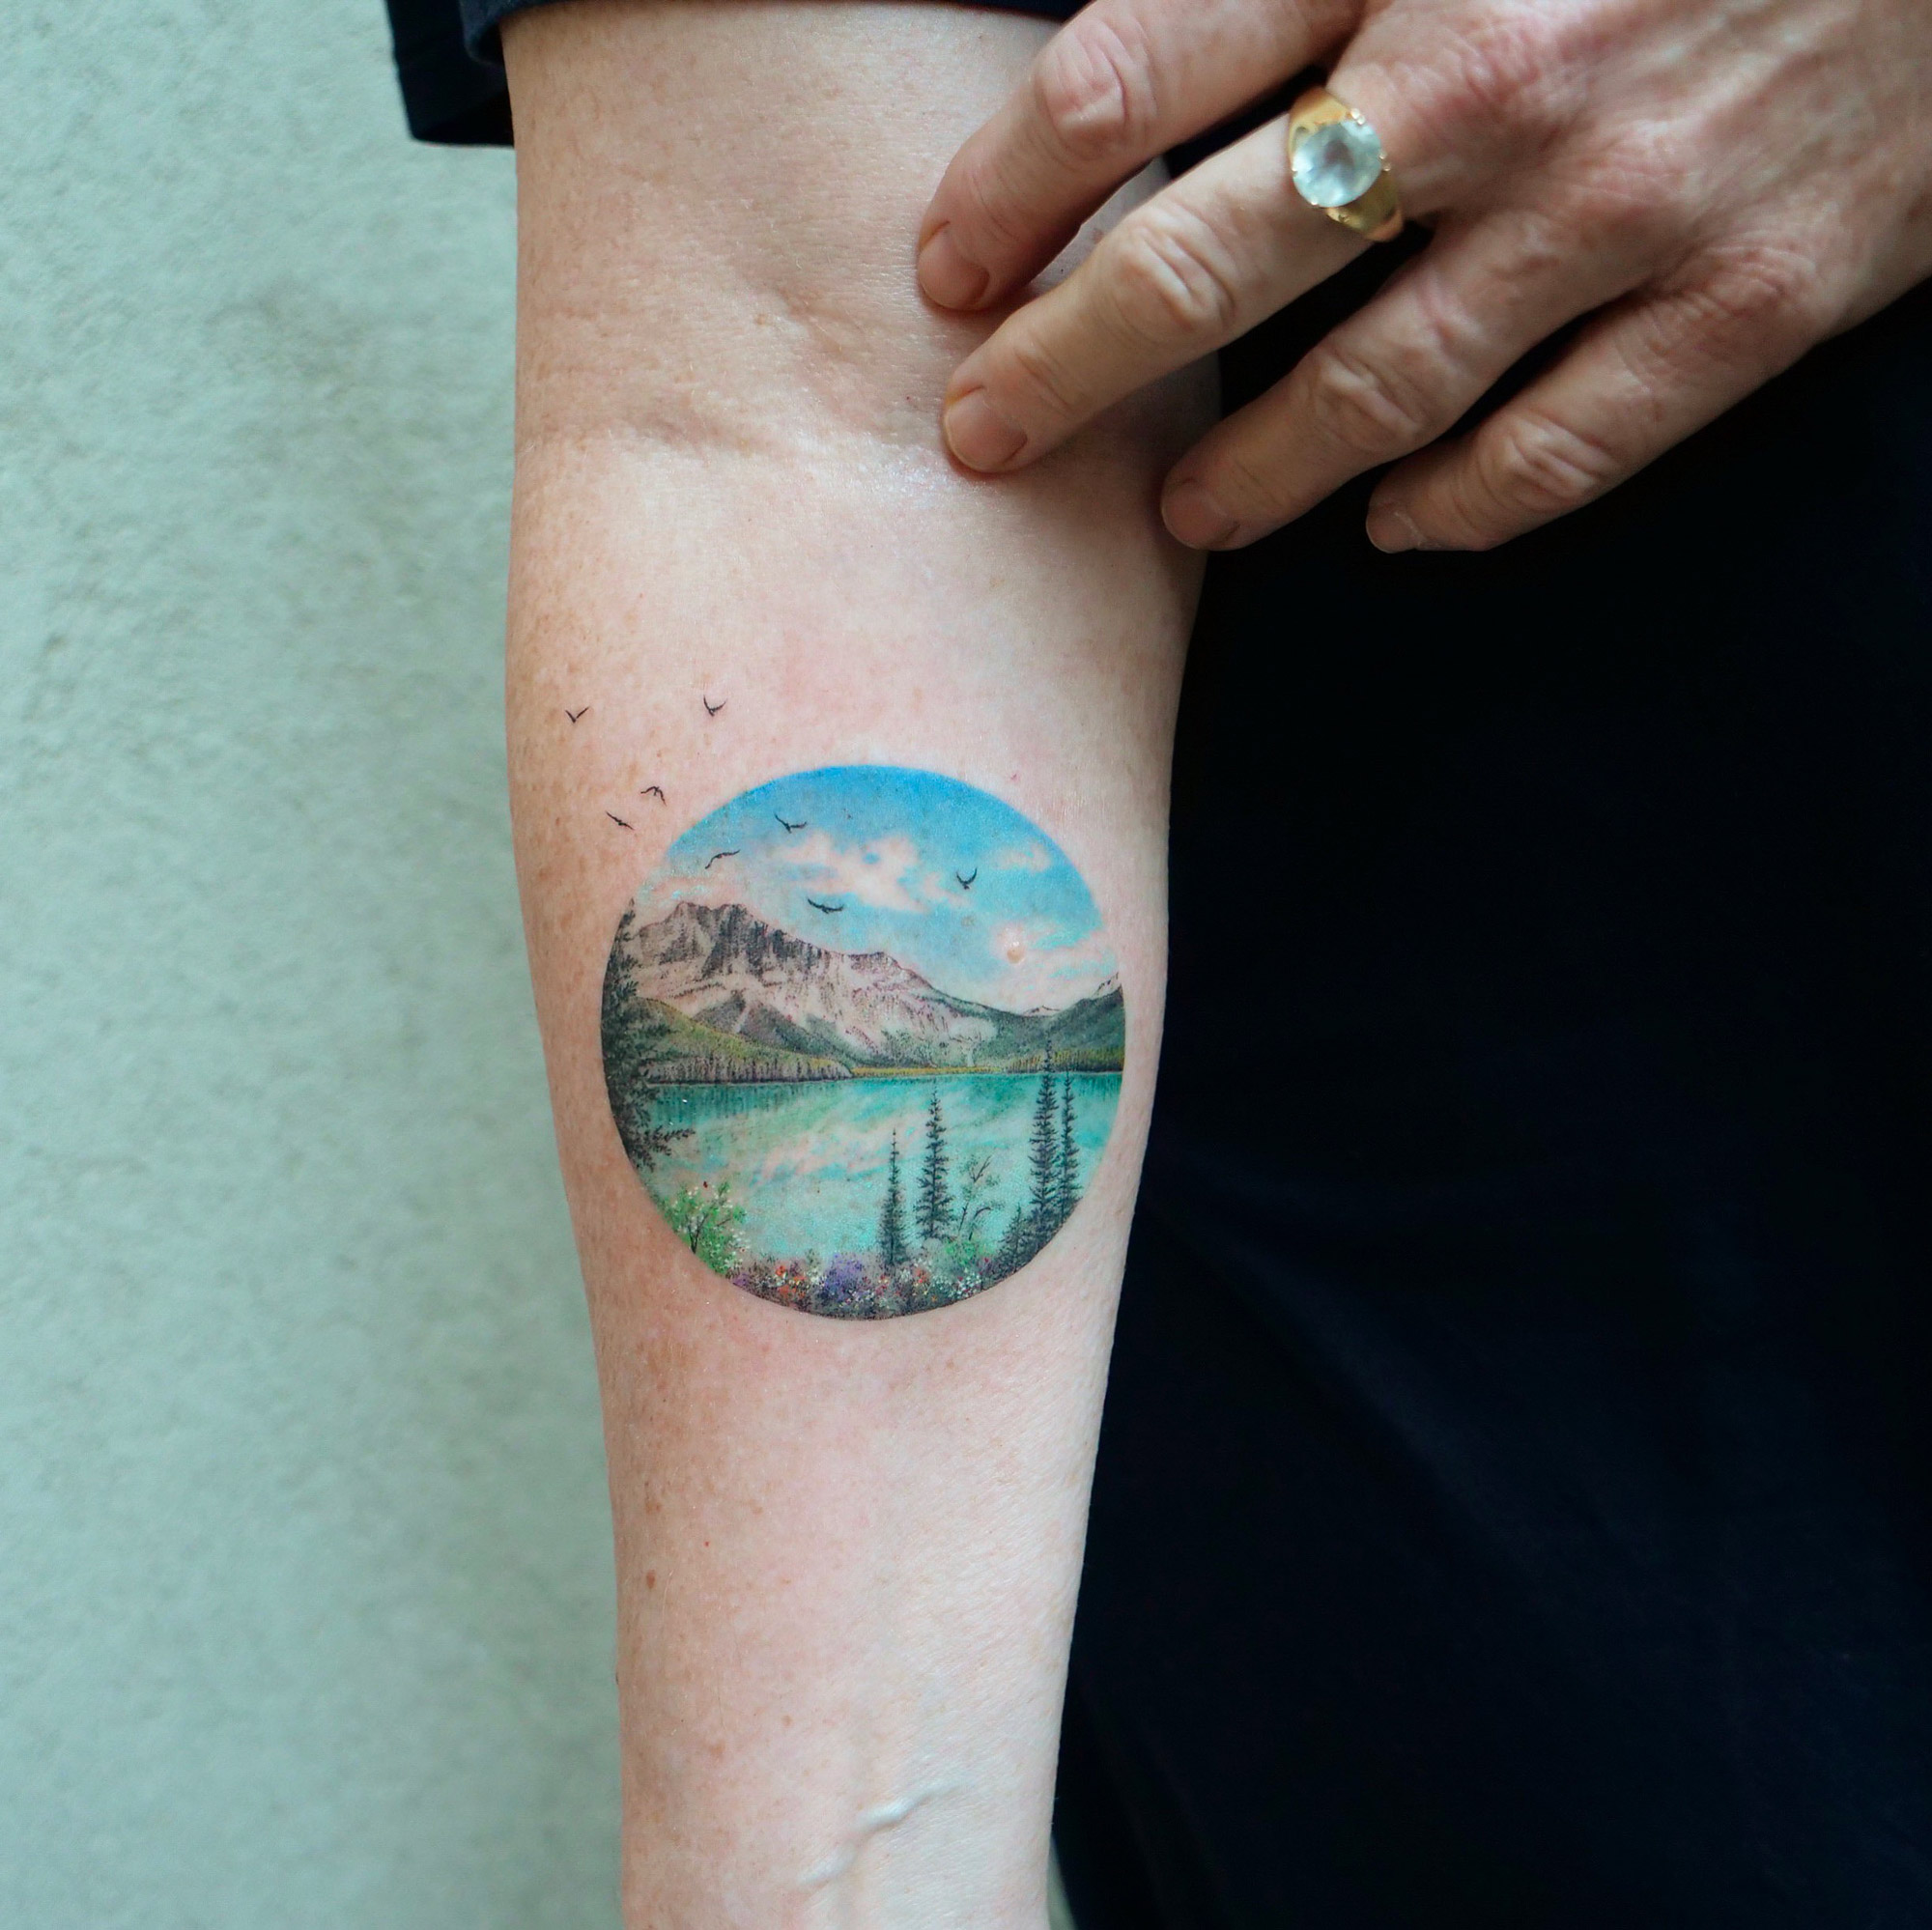 Perfectly Round Tattoos by Eva Encompass Miniature Worlds Inspired by Art History | Colossal